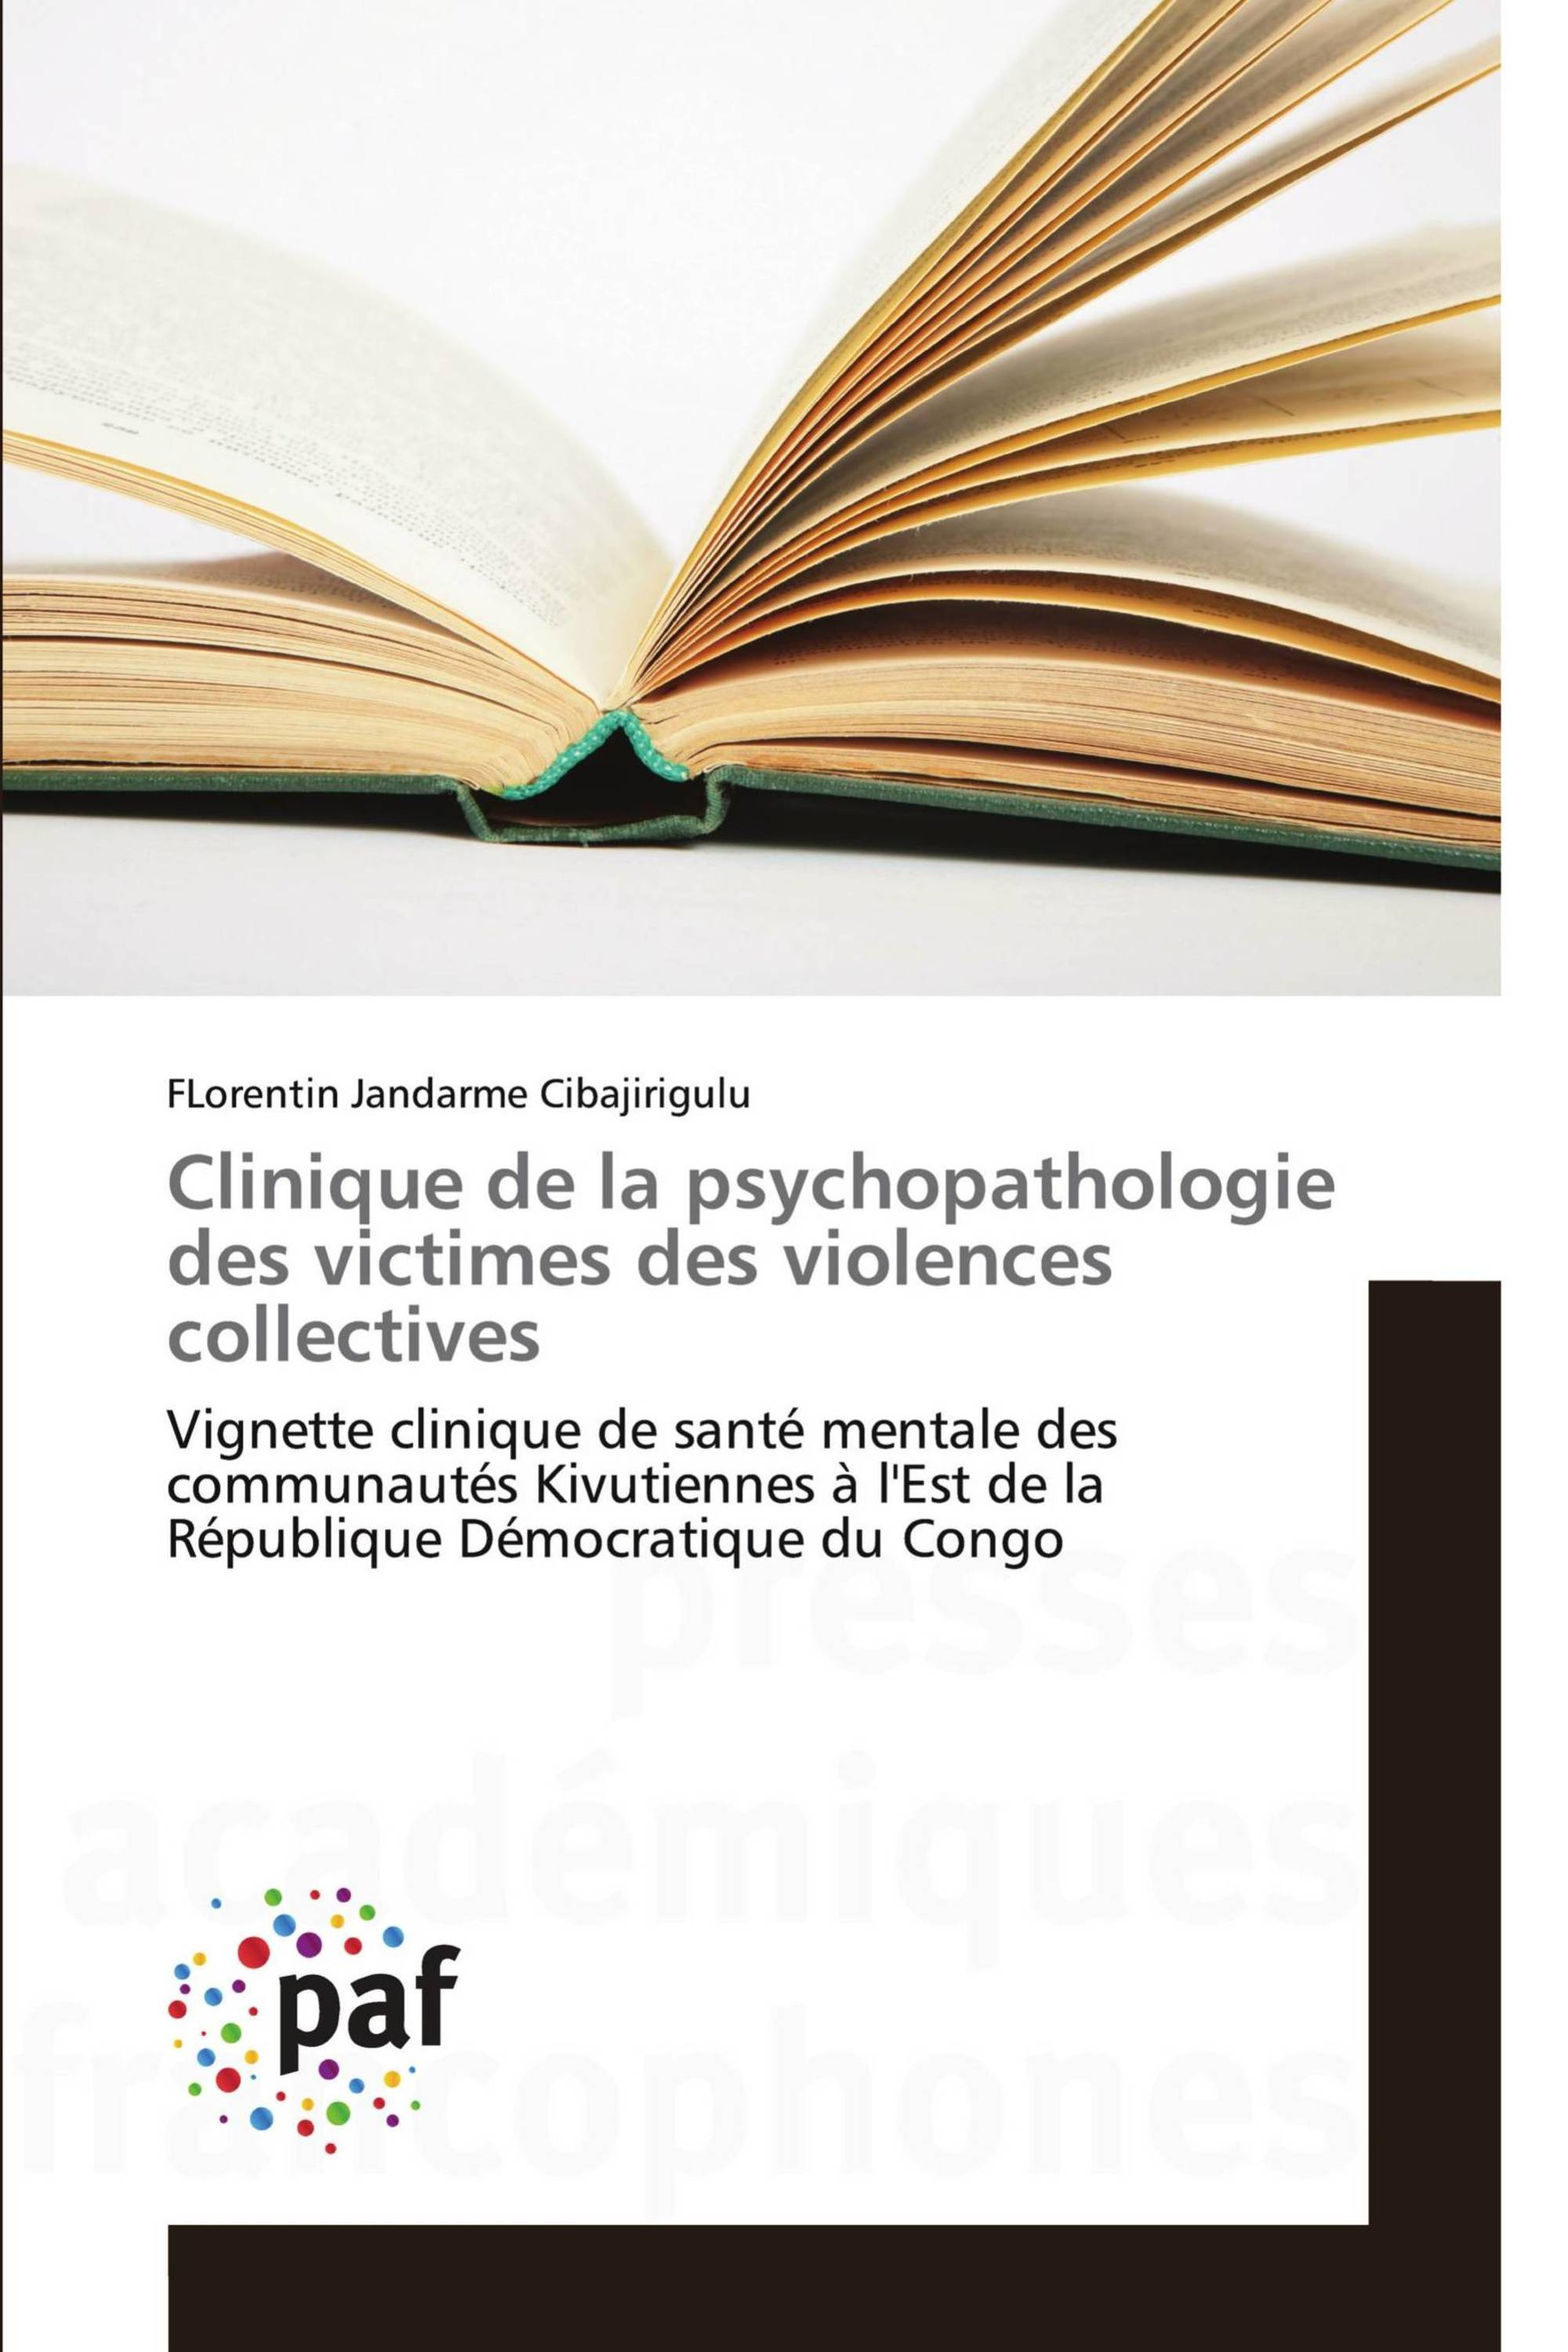 Clinique de la psychopathologie des victimes des violences collectives